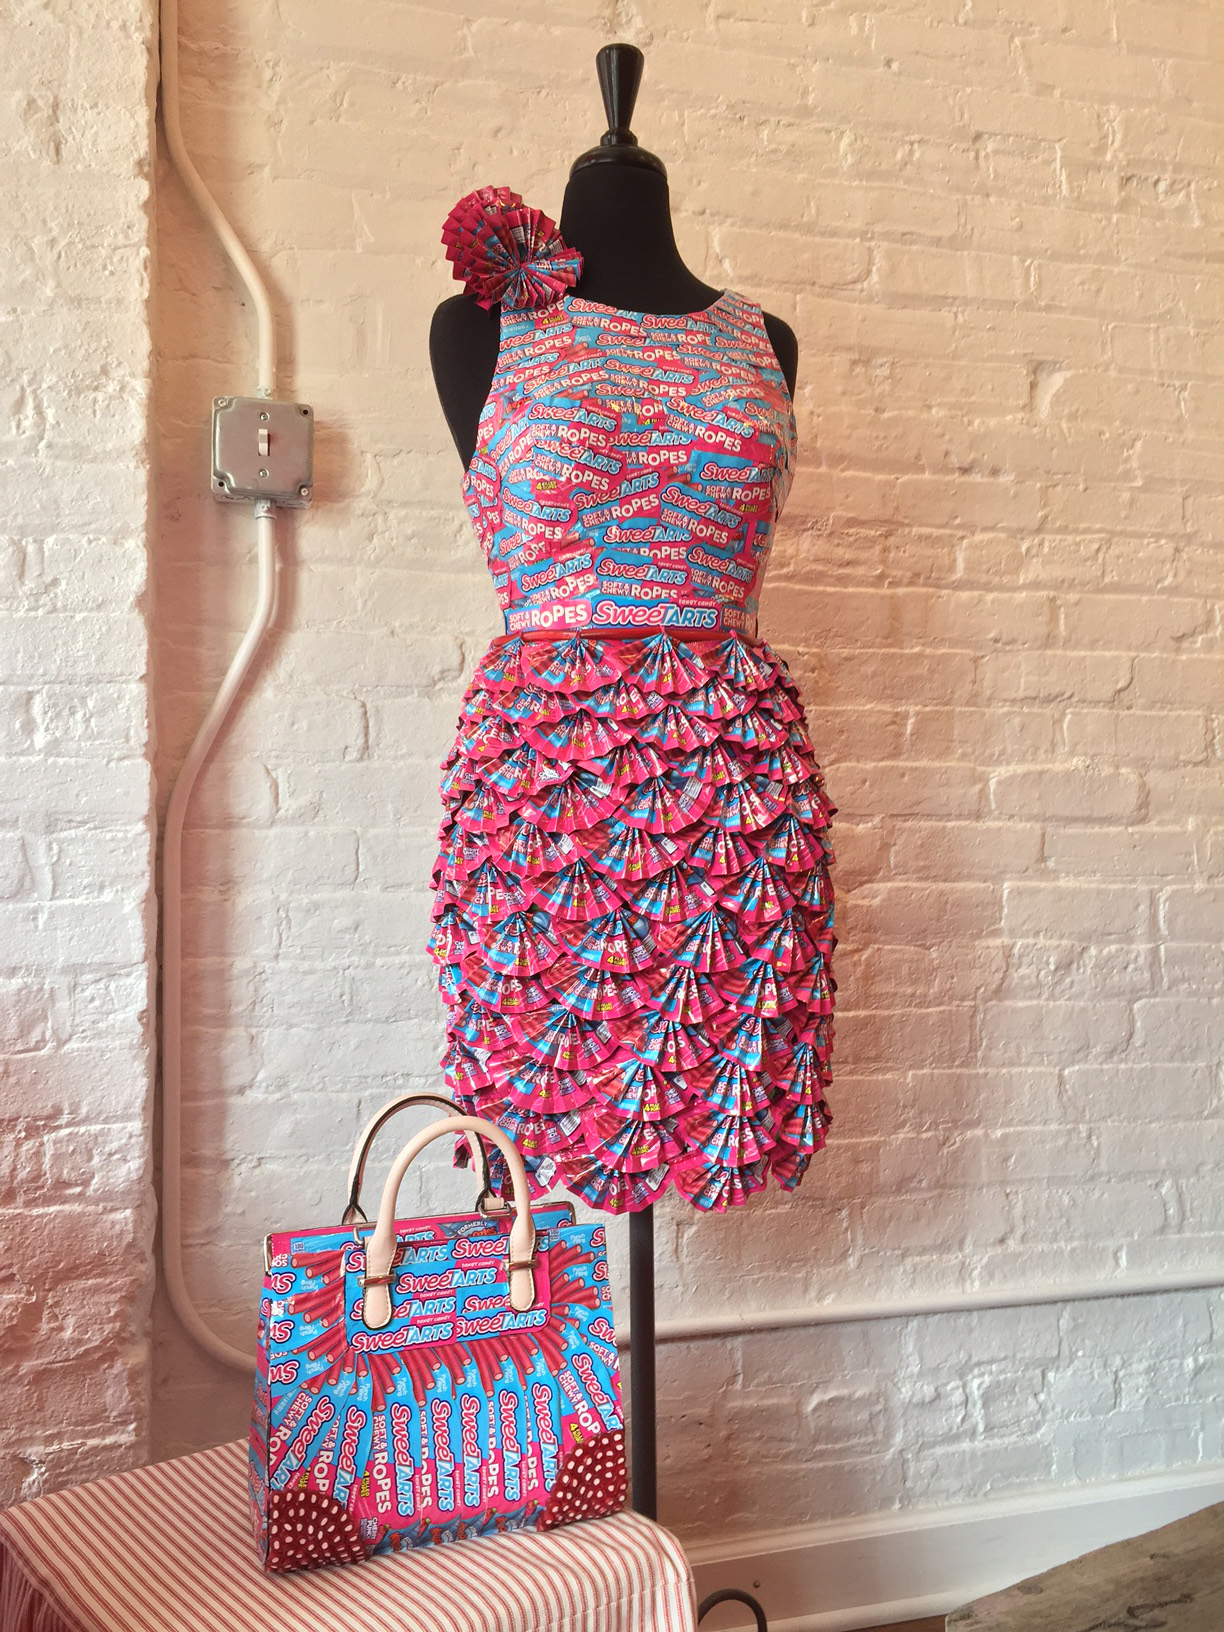 Candyality, Water Tower Place Host Candy Wrapper Dress